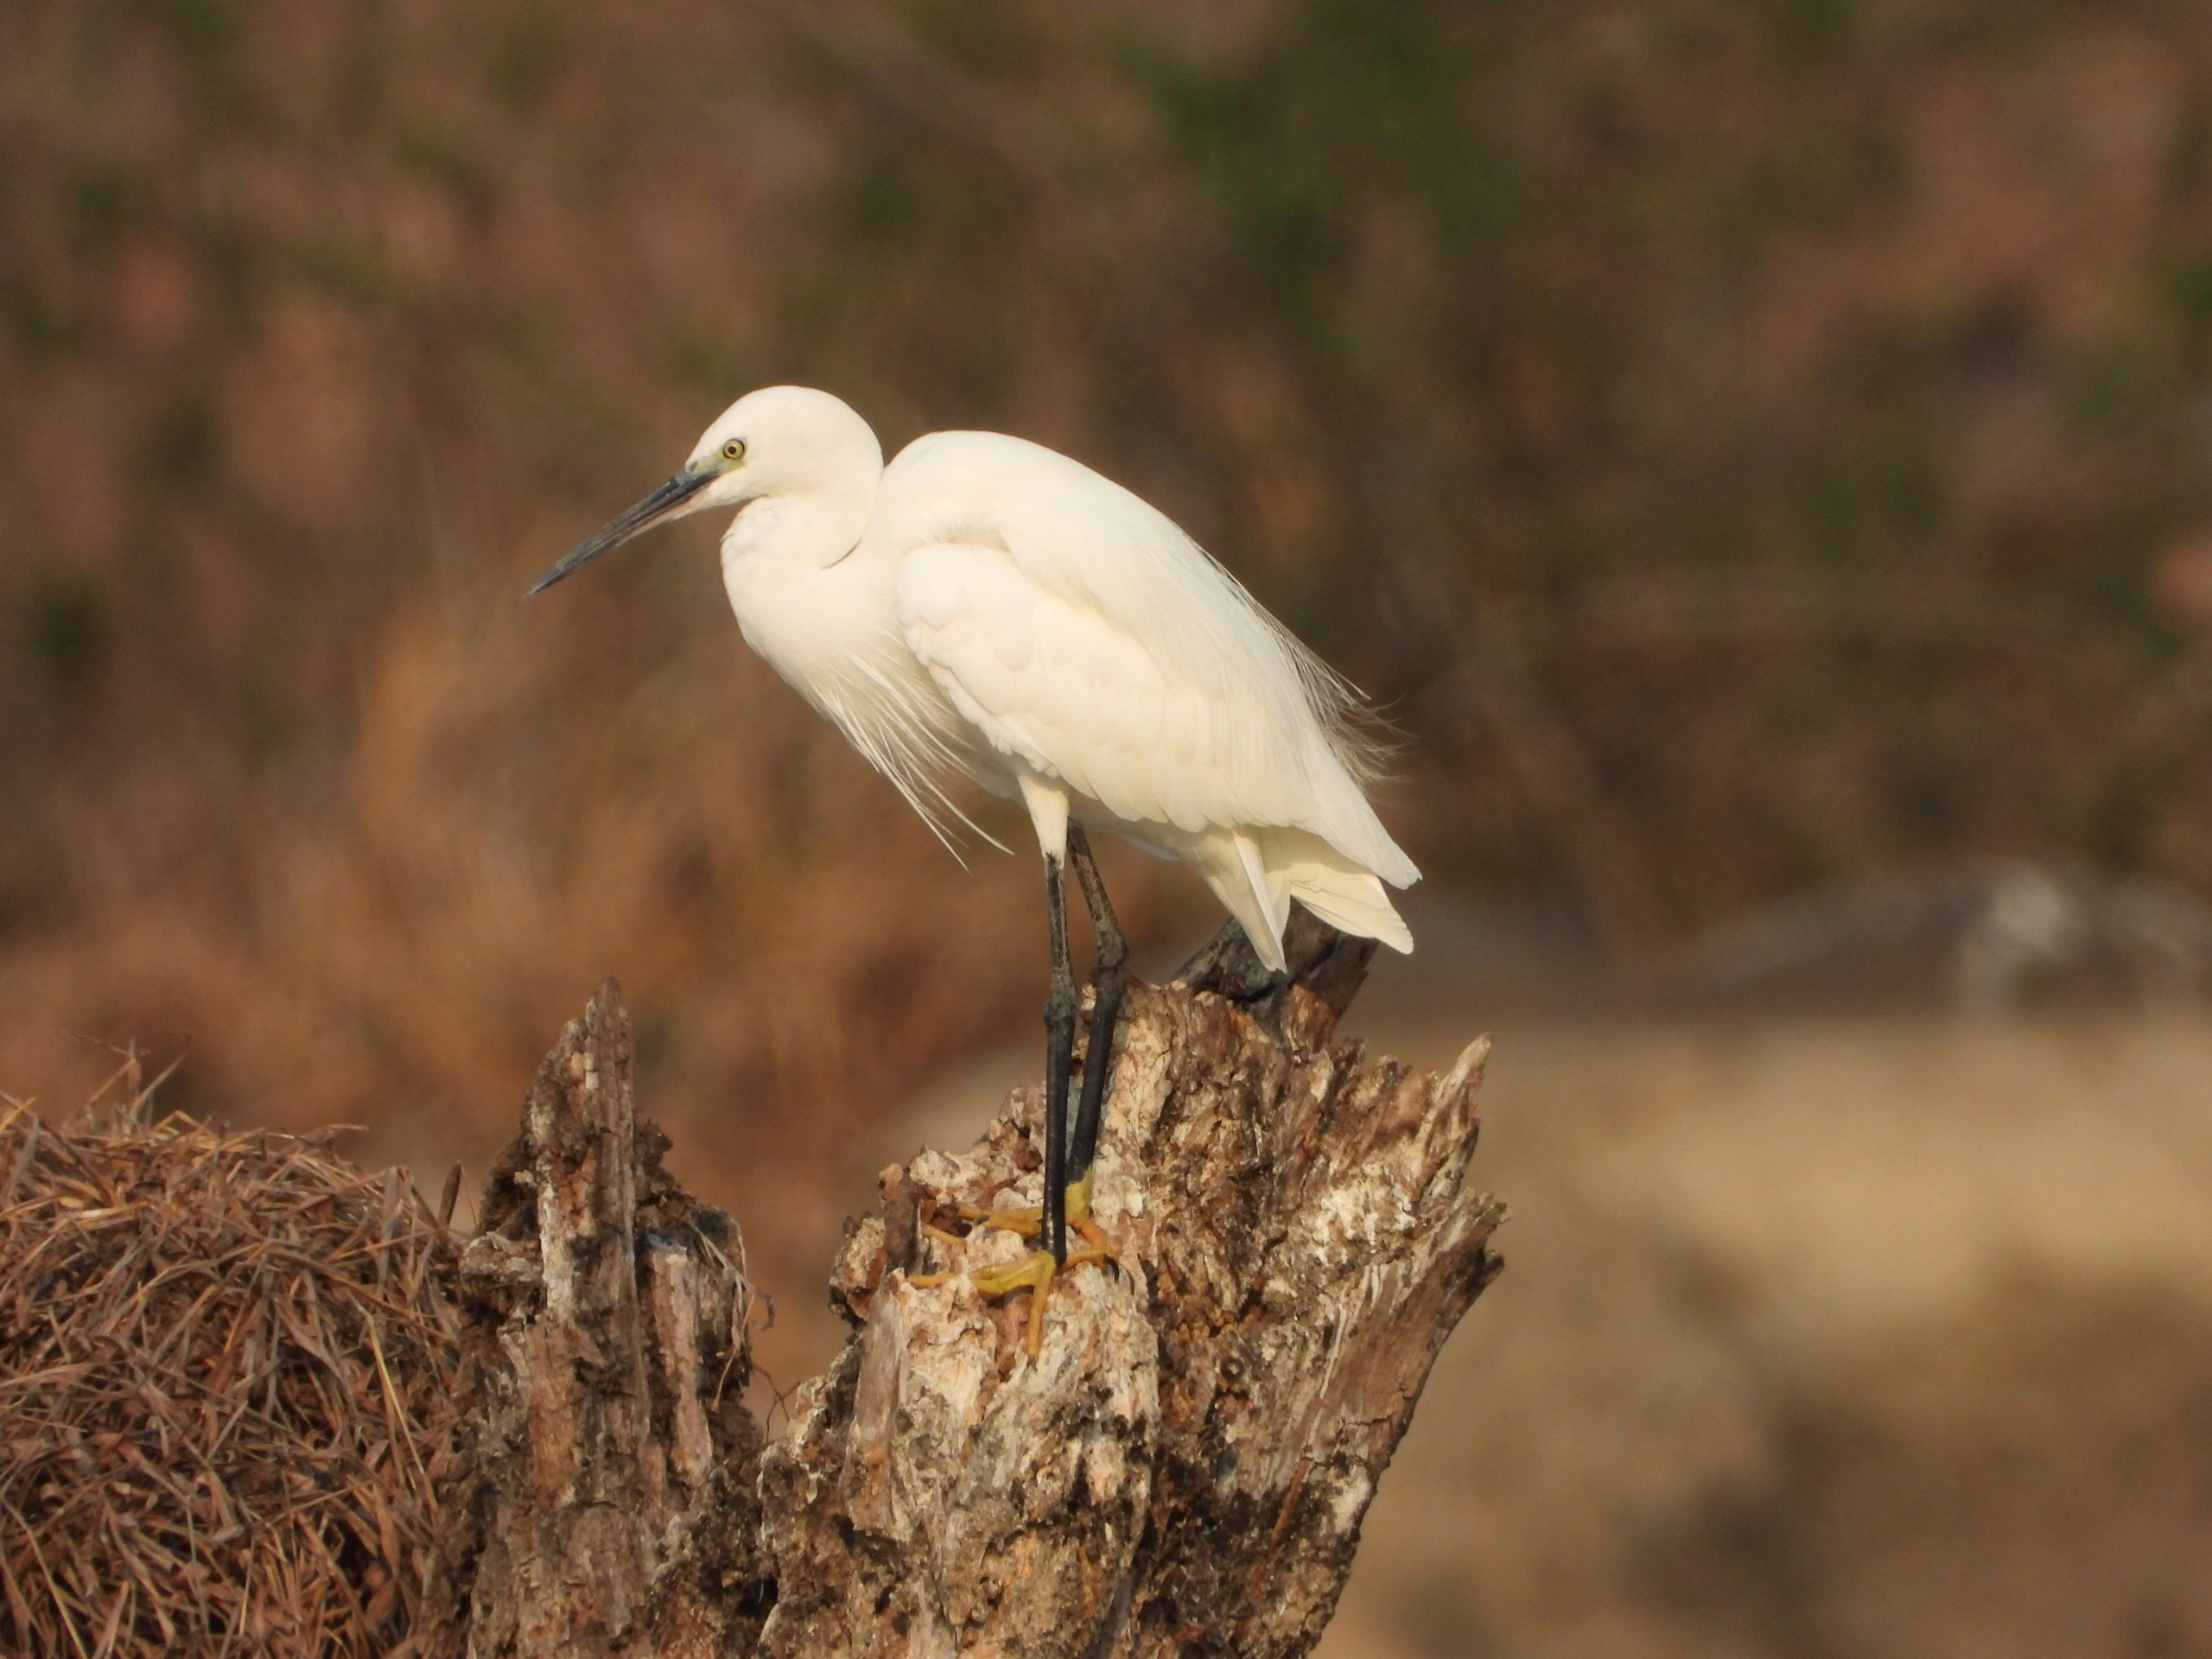 A great egret on a wood